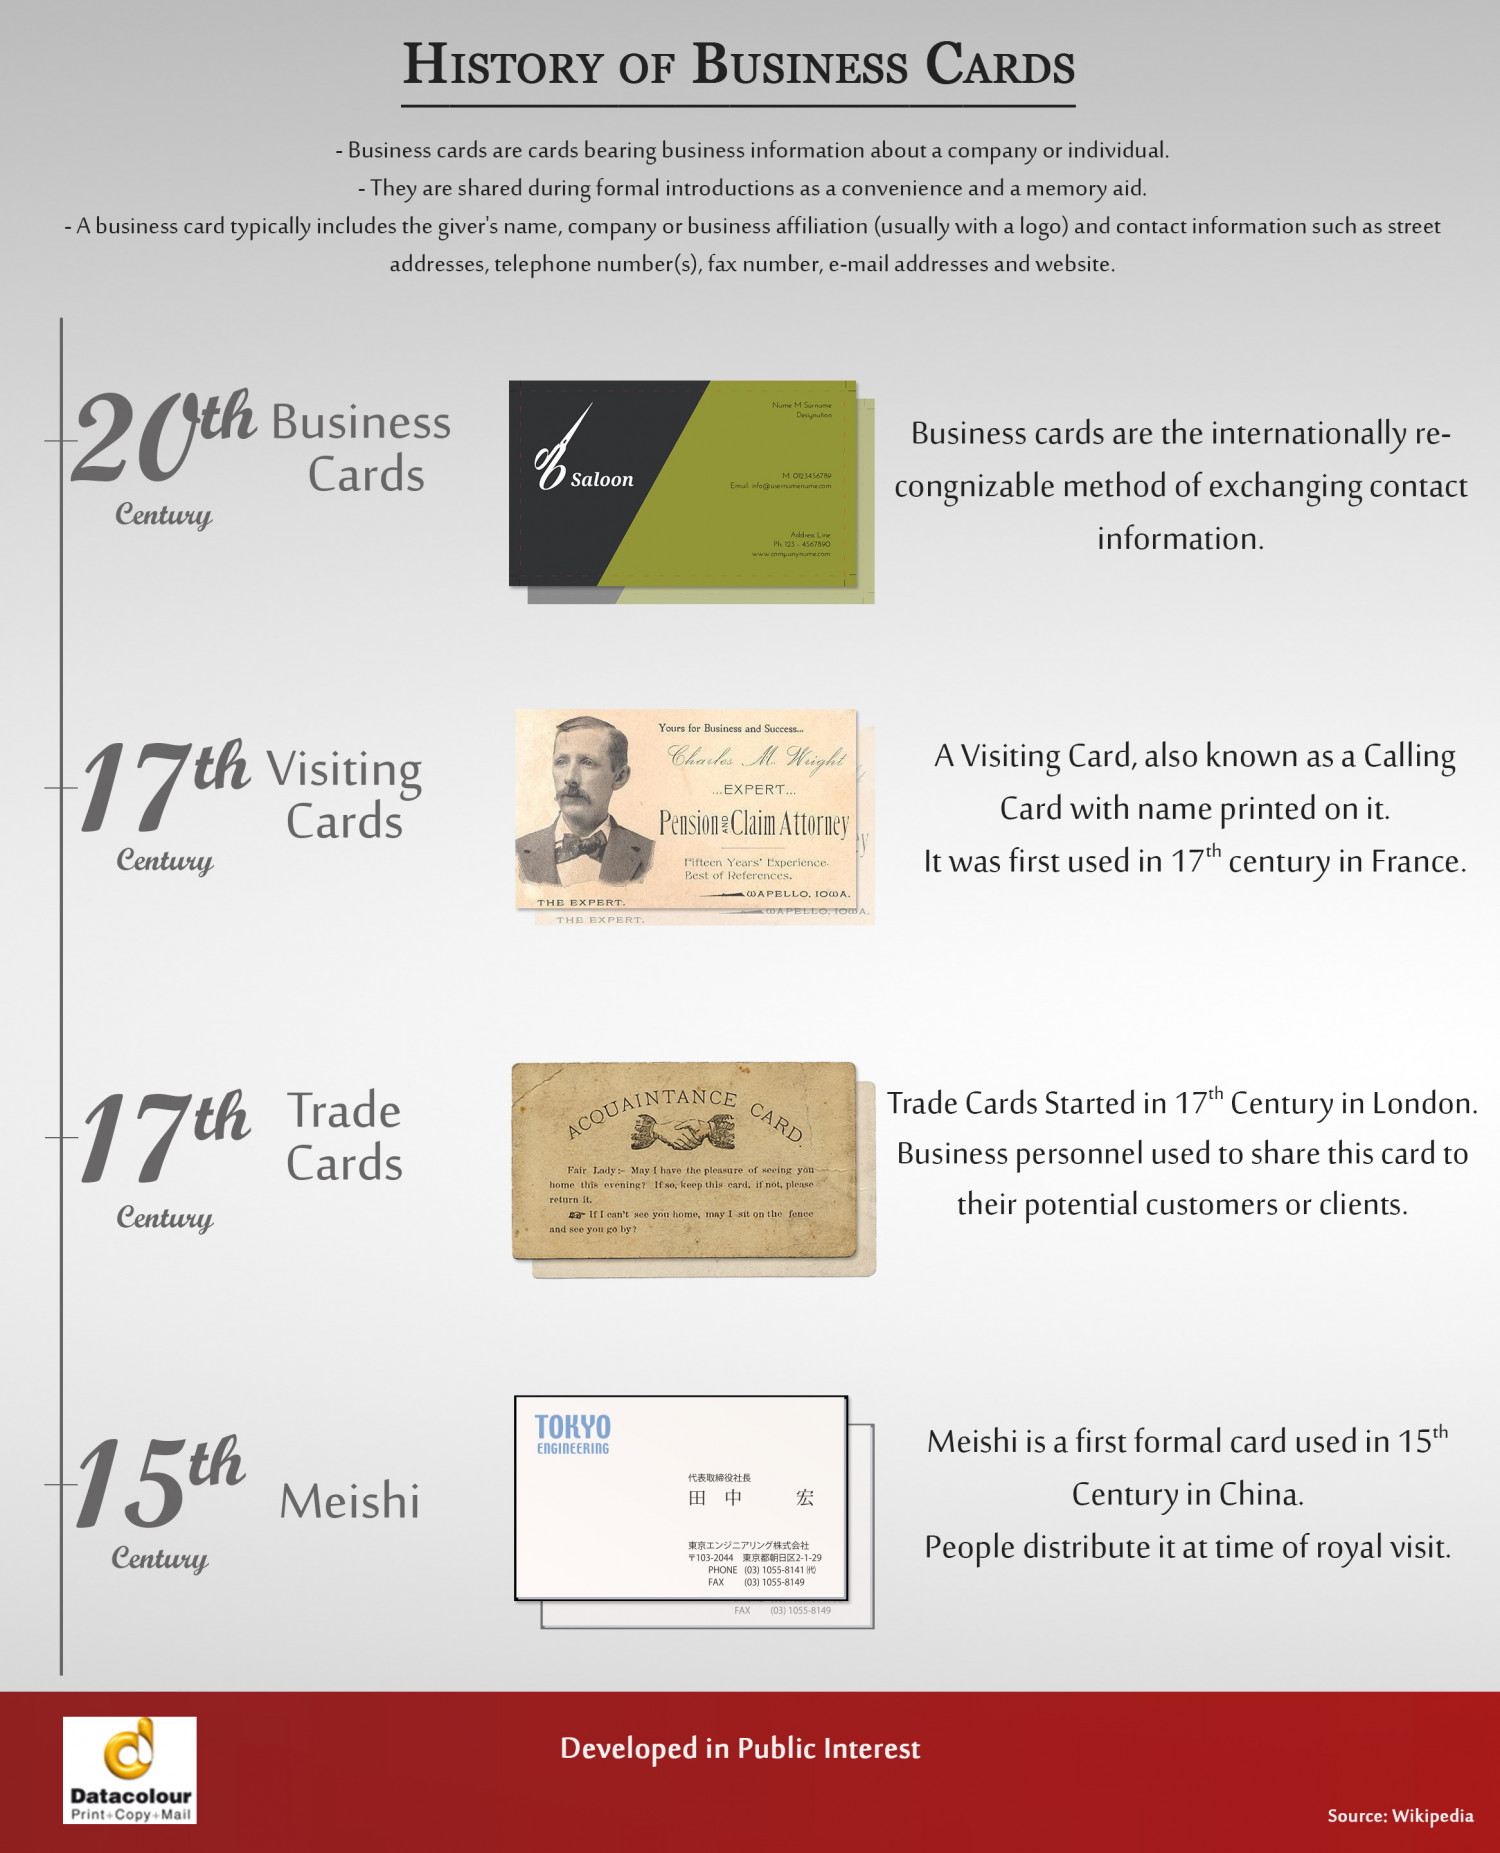 History of Business Cards Infographic